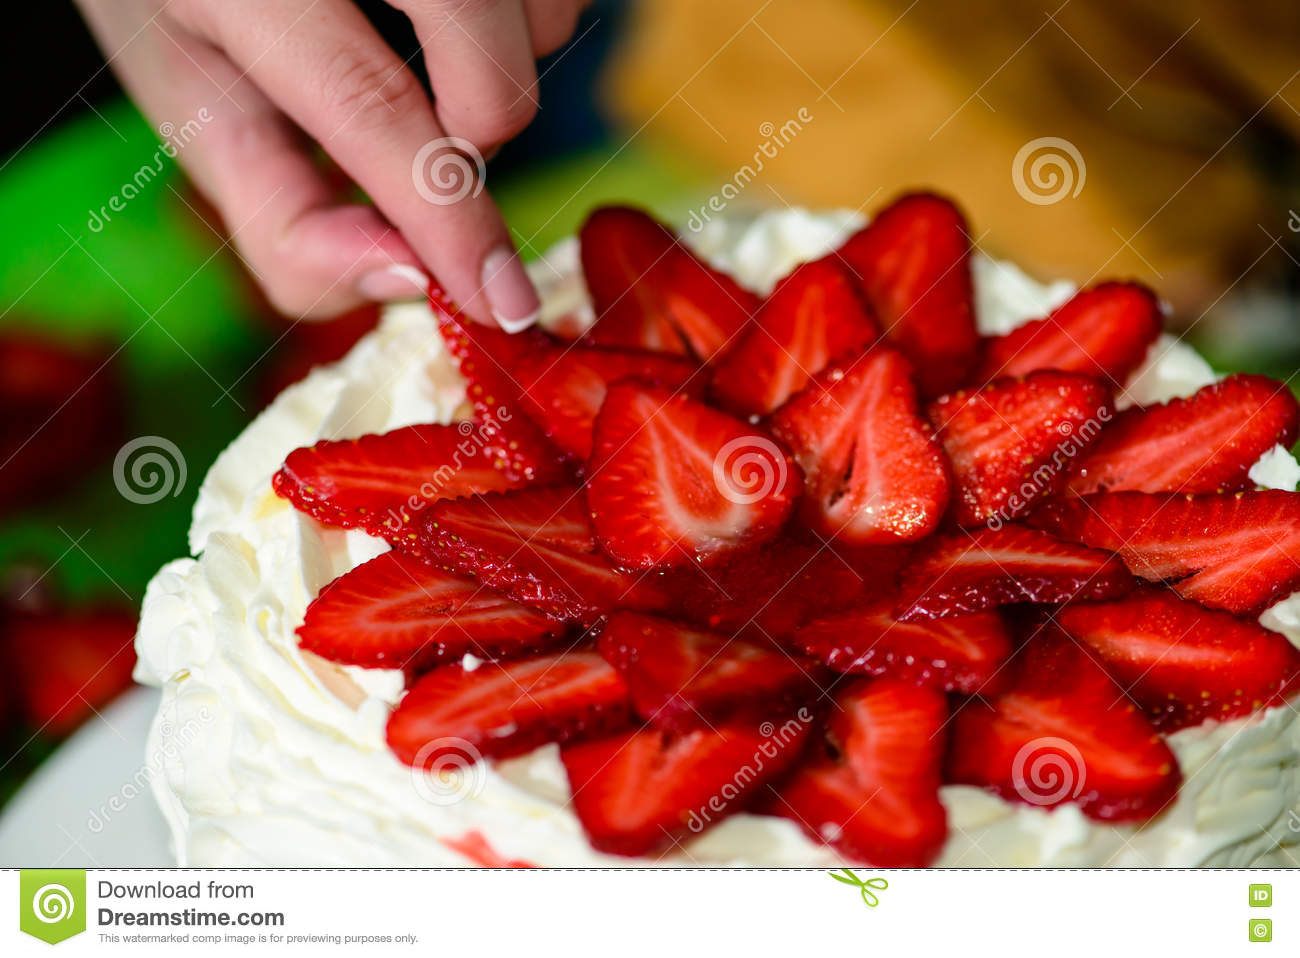 Process Of Decorating Cake With Fresh Strawberries Stock Image